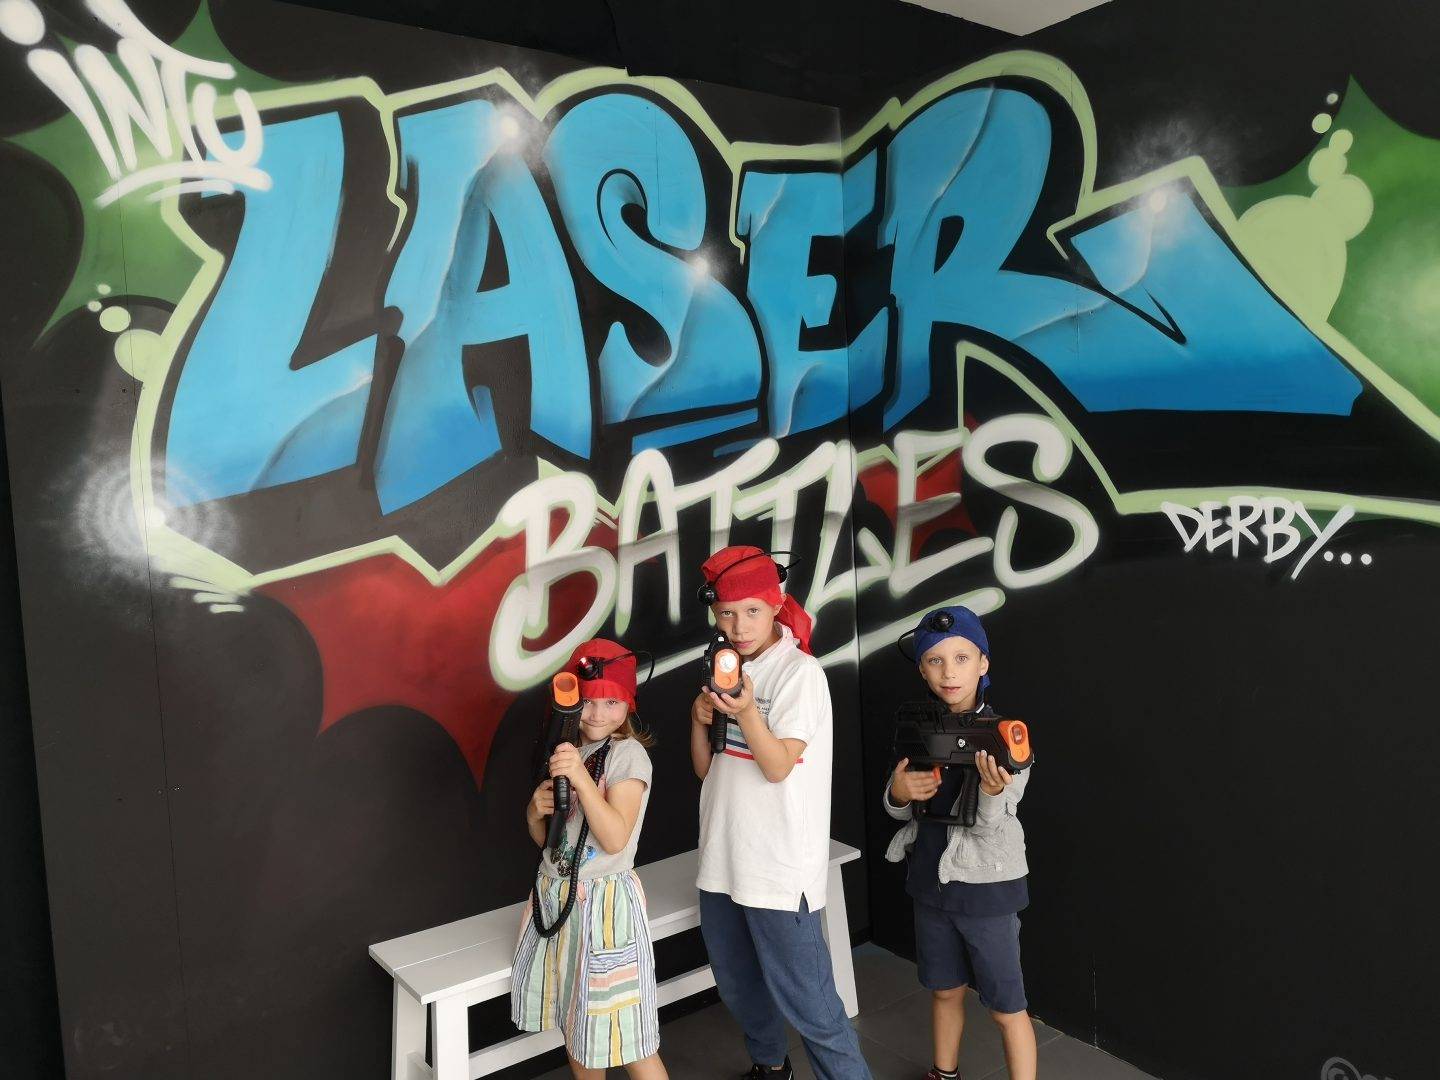 Laser Battles at Intu Derby